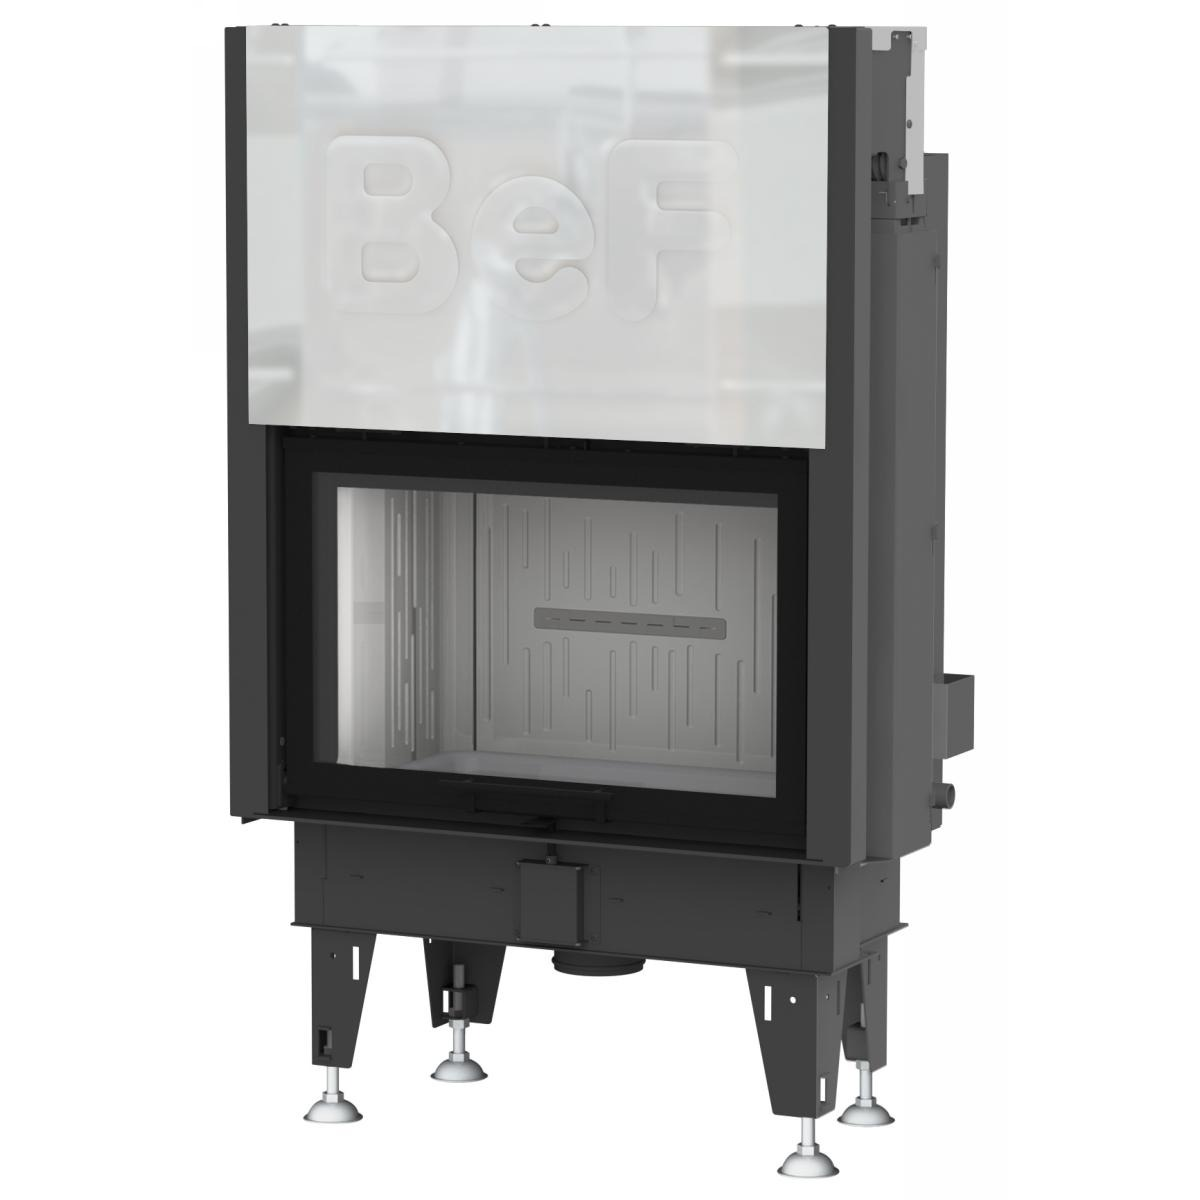 Bef Aquatic WH V 80 door lift